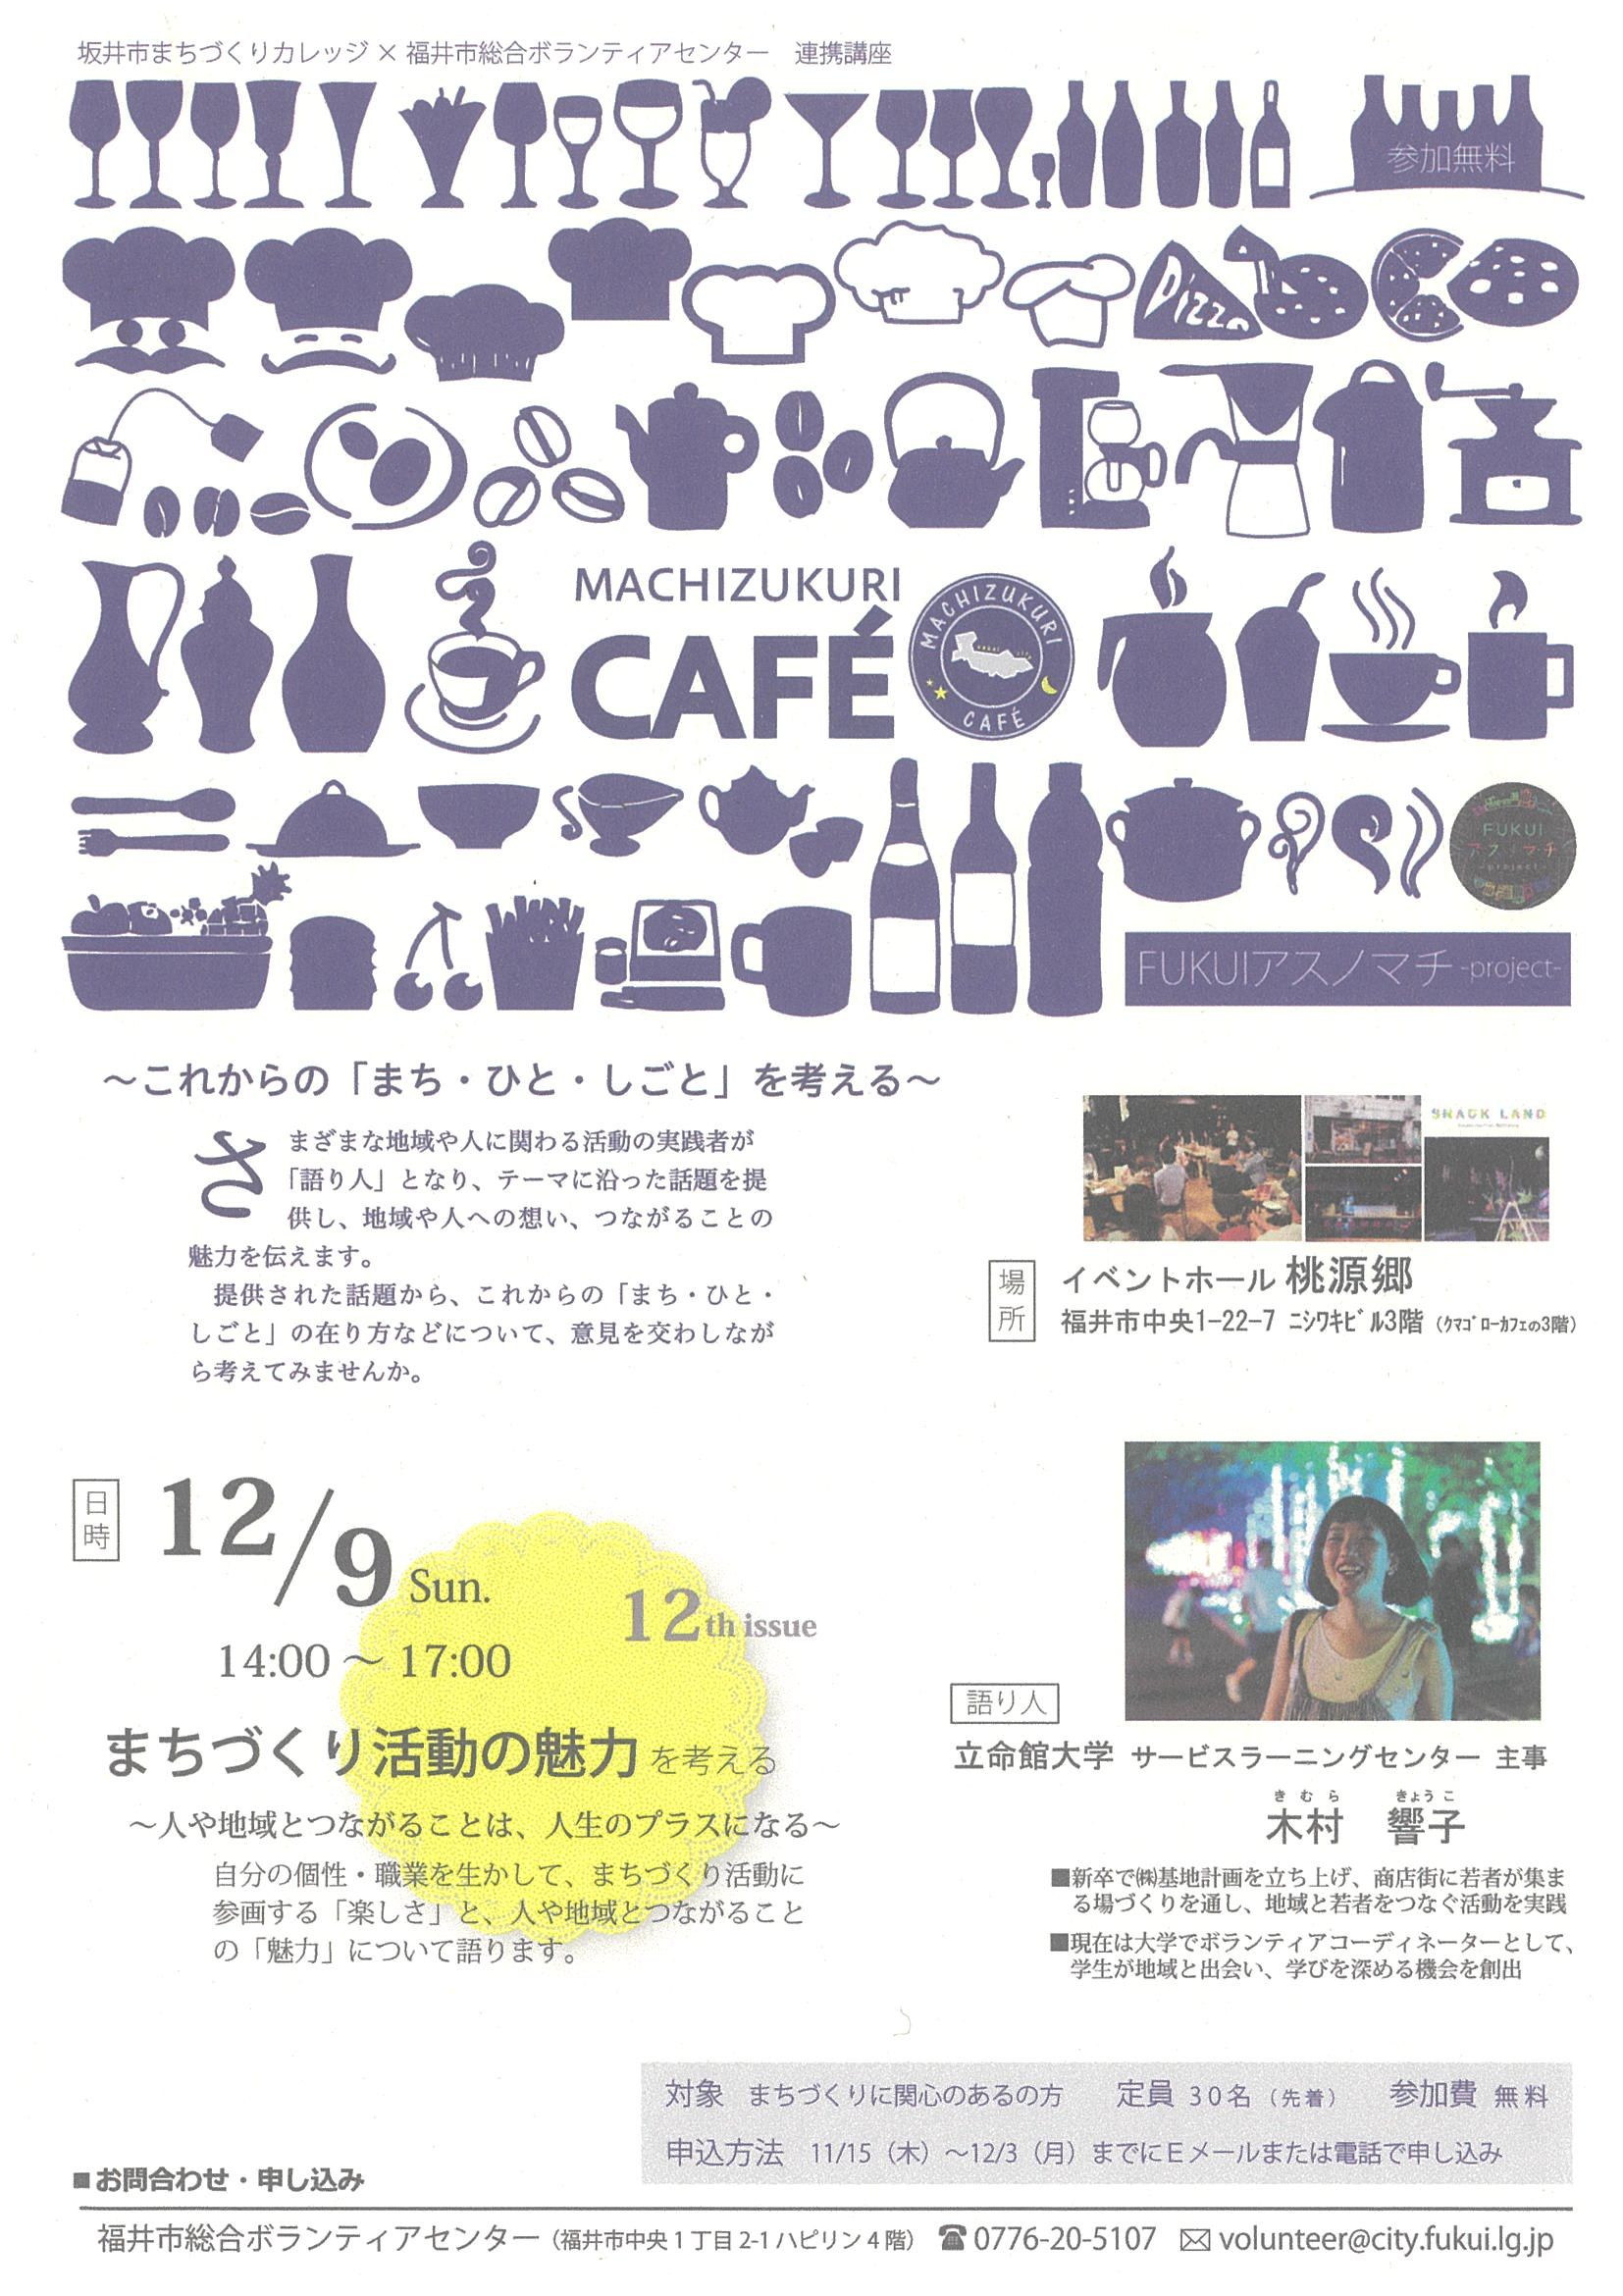 『MACHIZUKURI CAFE』